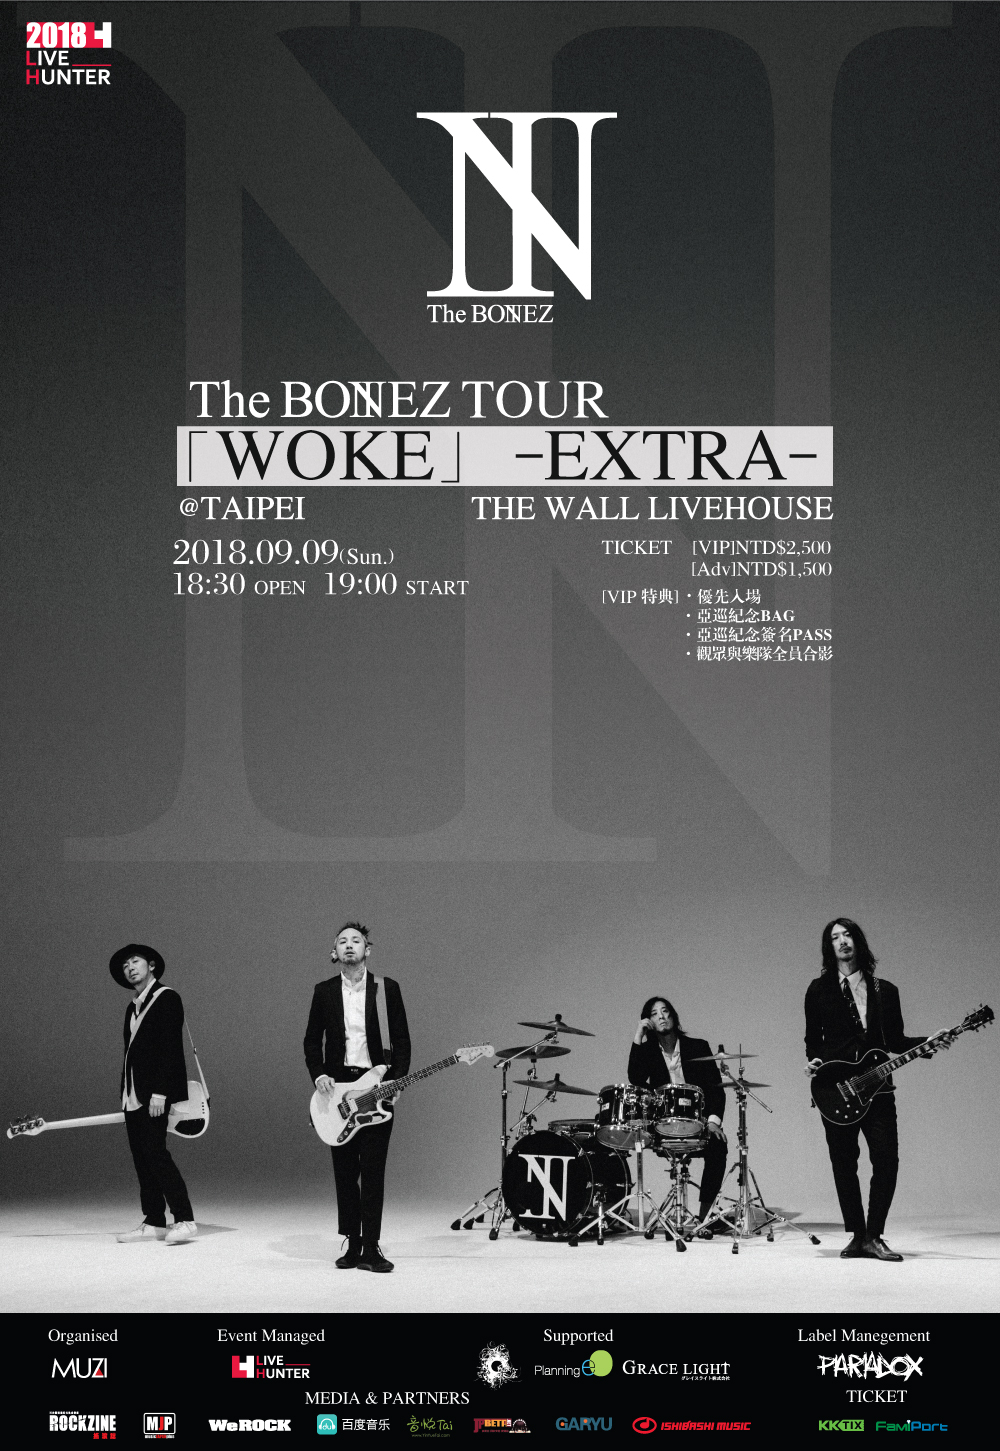 The BONEZ TOUR 「WOKE」 -EXTRA-TAIPEI